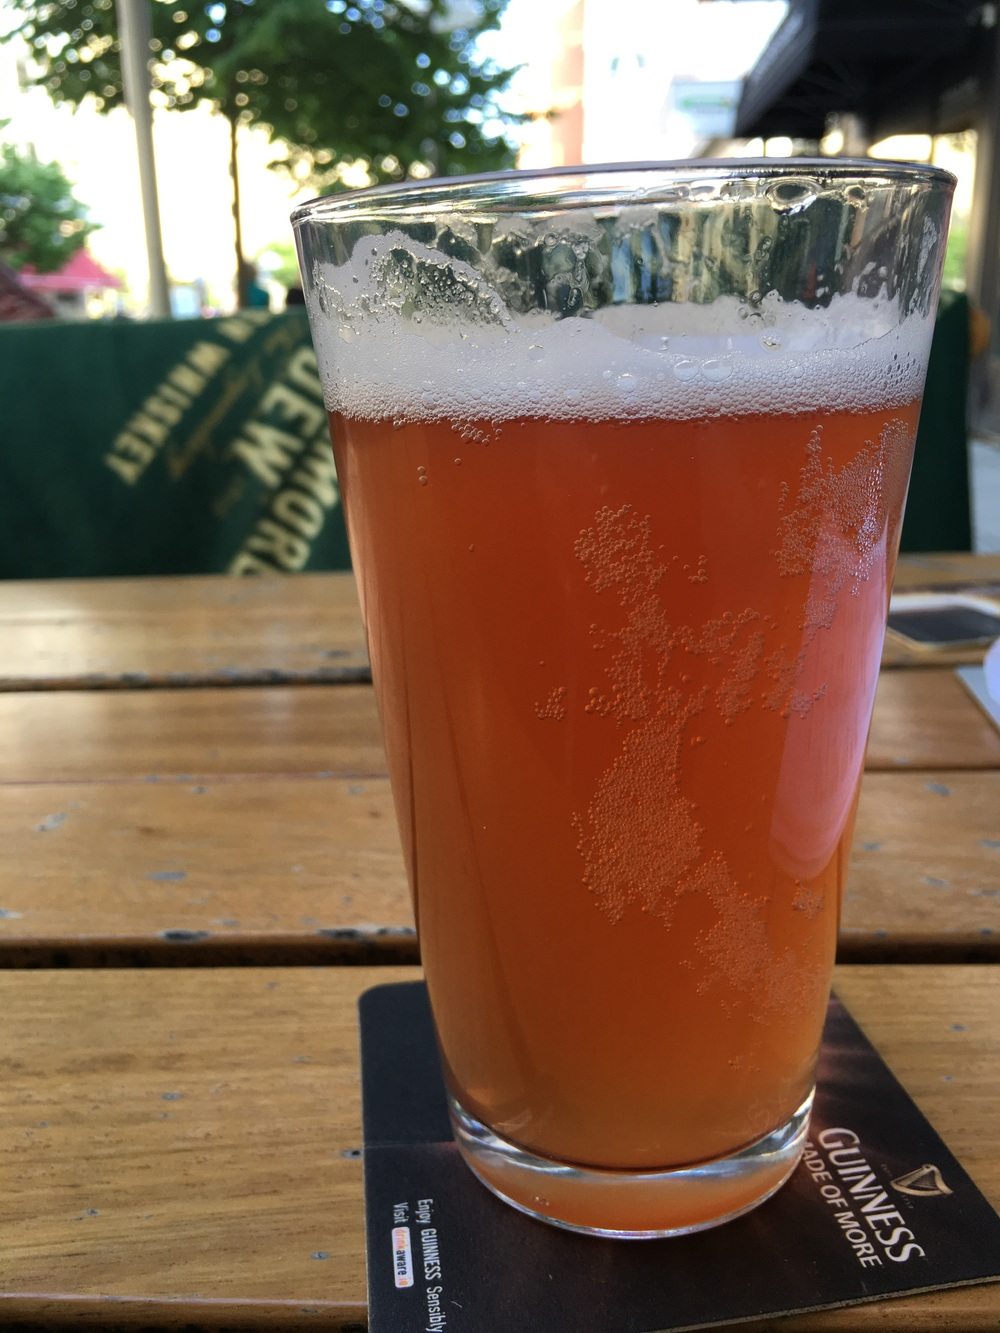 Rhubarb Beer, a specialty of one of the local breweries in Uppsala. Perfect for a very hot day!